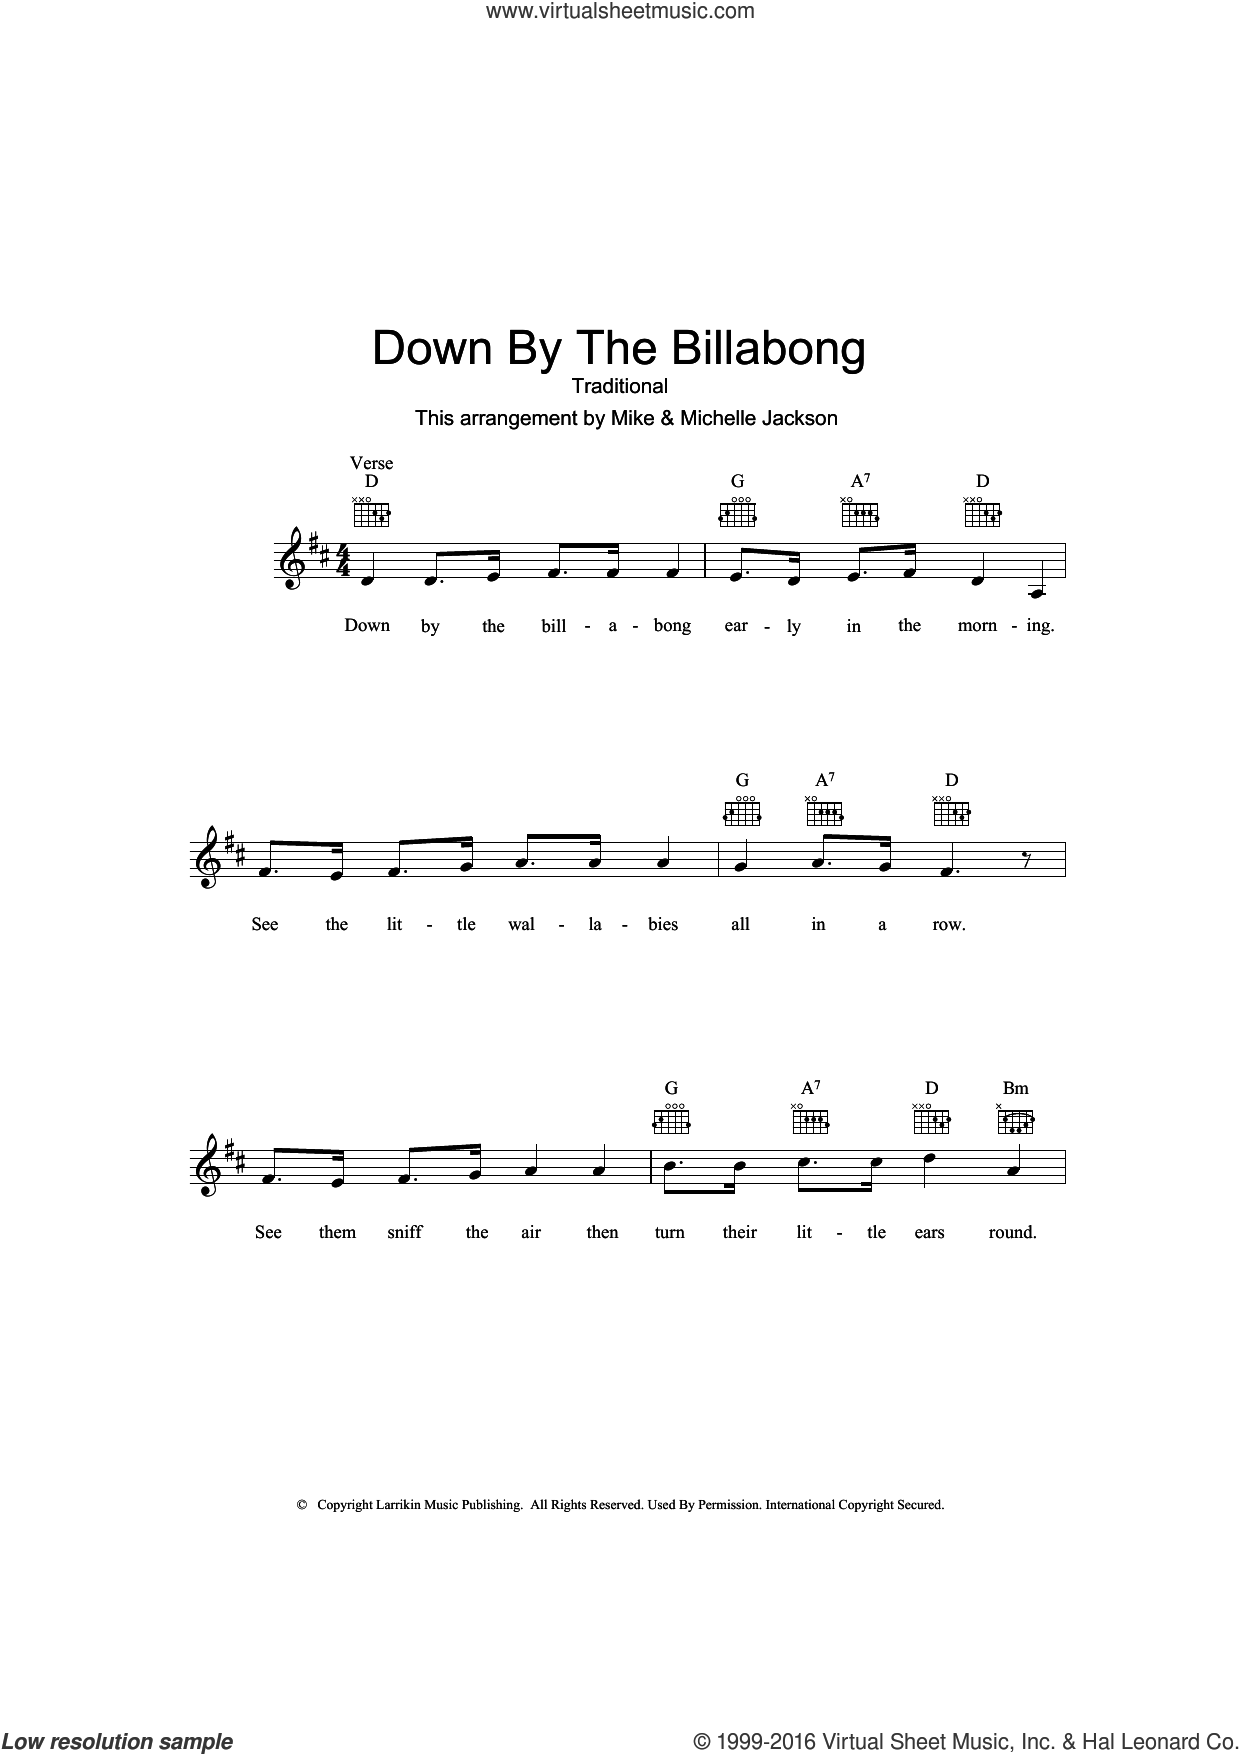 Down By The Billabong sheet music for voice and other instruments (fake book), intermediate. Score Image Preview.